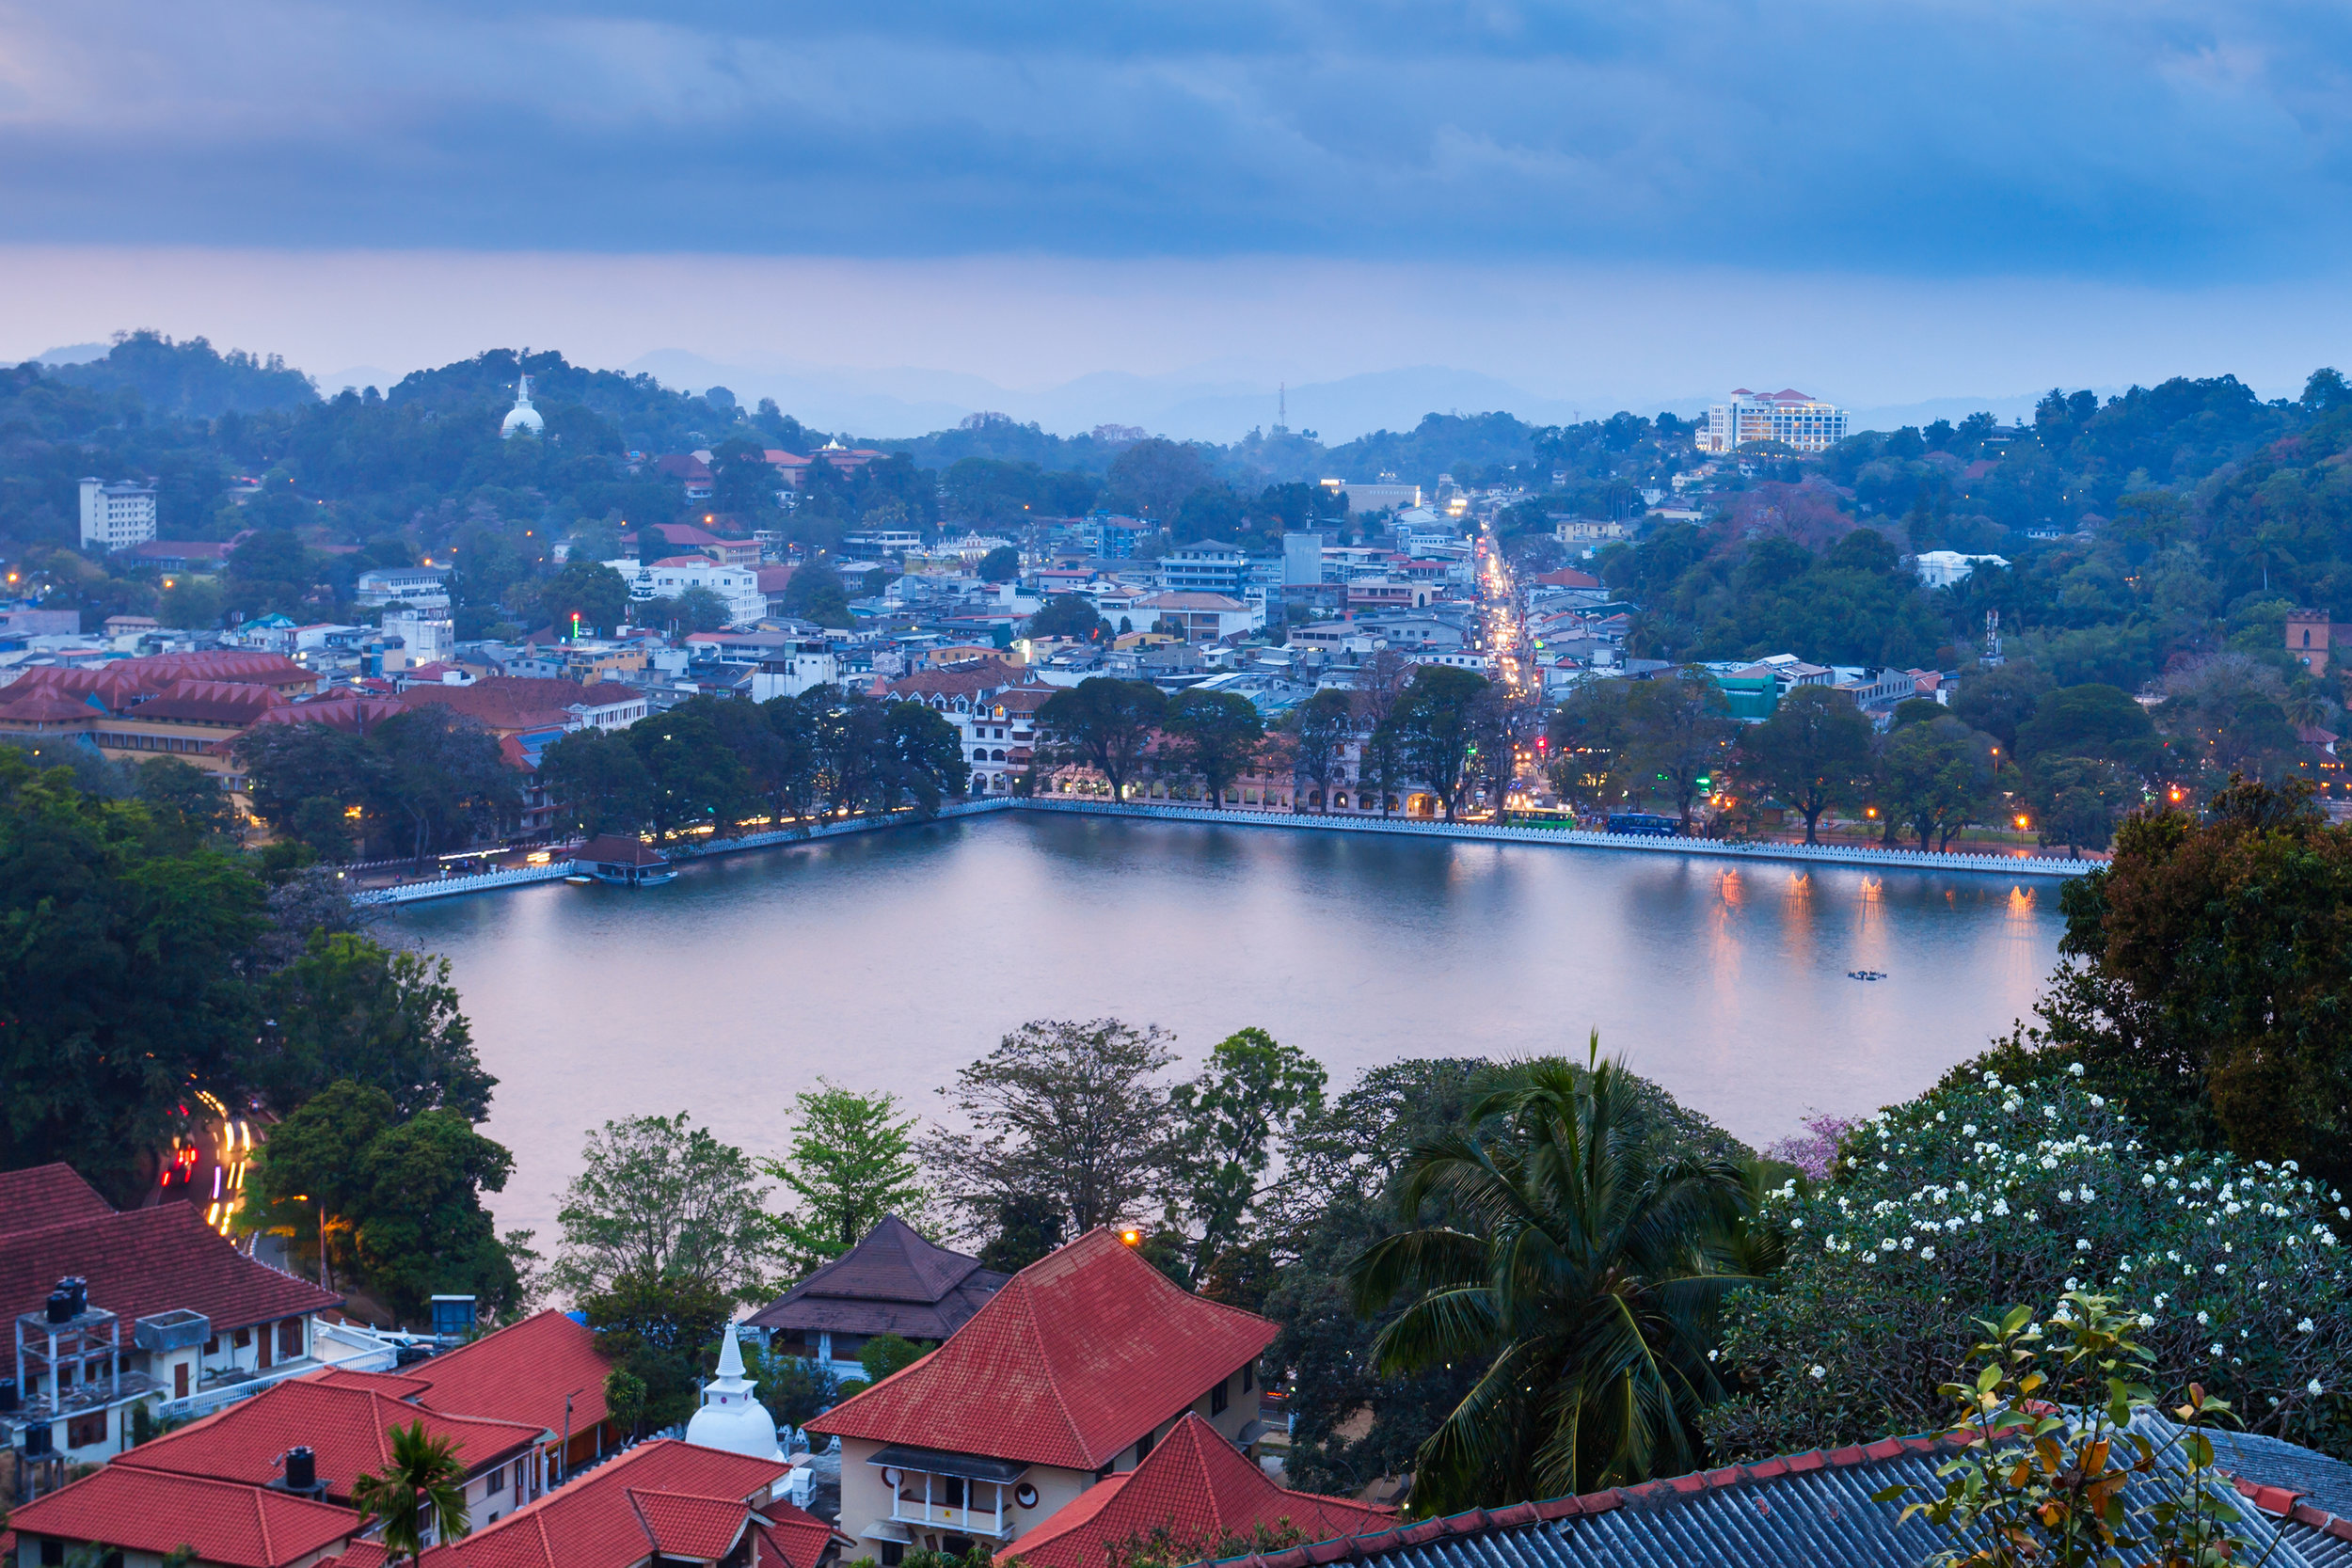 srilanka_kandy_bigstock-Kandy-Lake-And-City-191333917.jpg